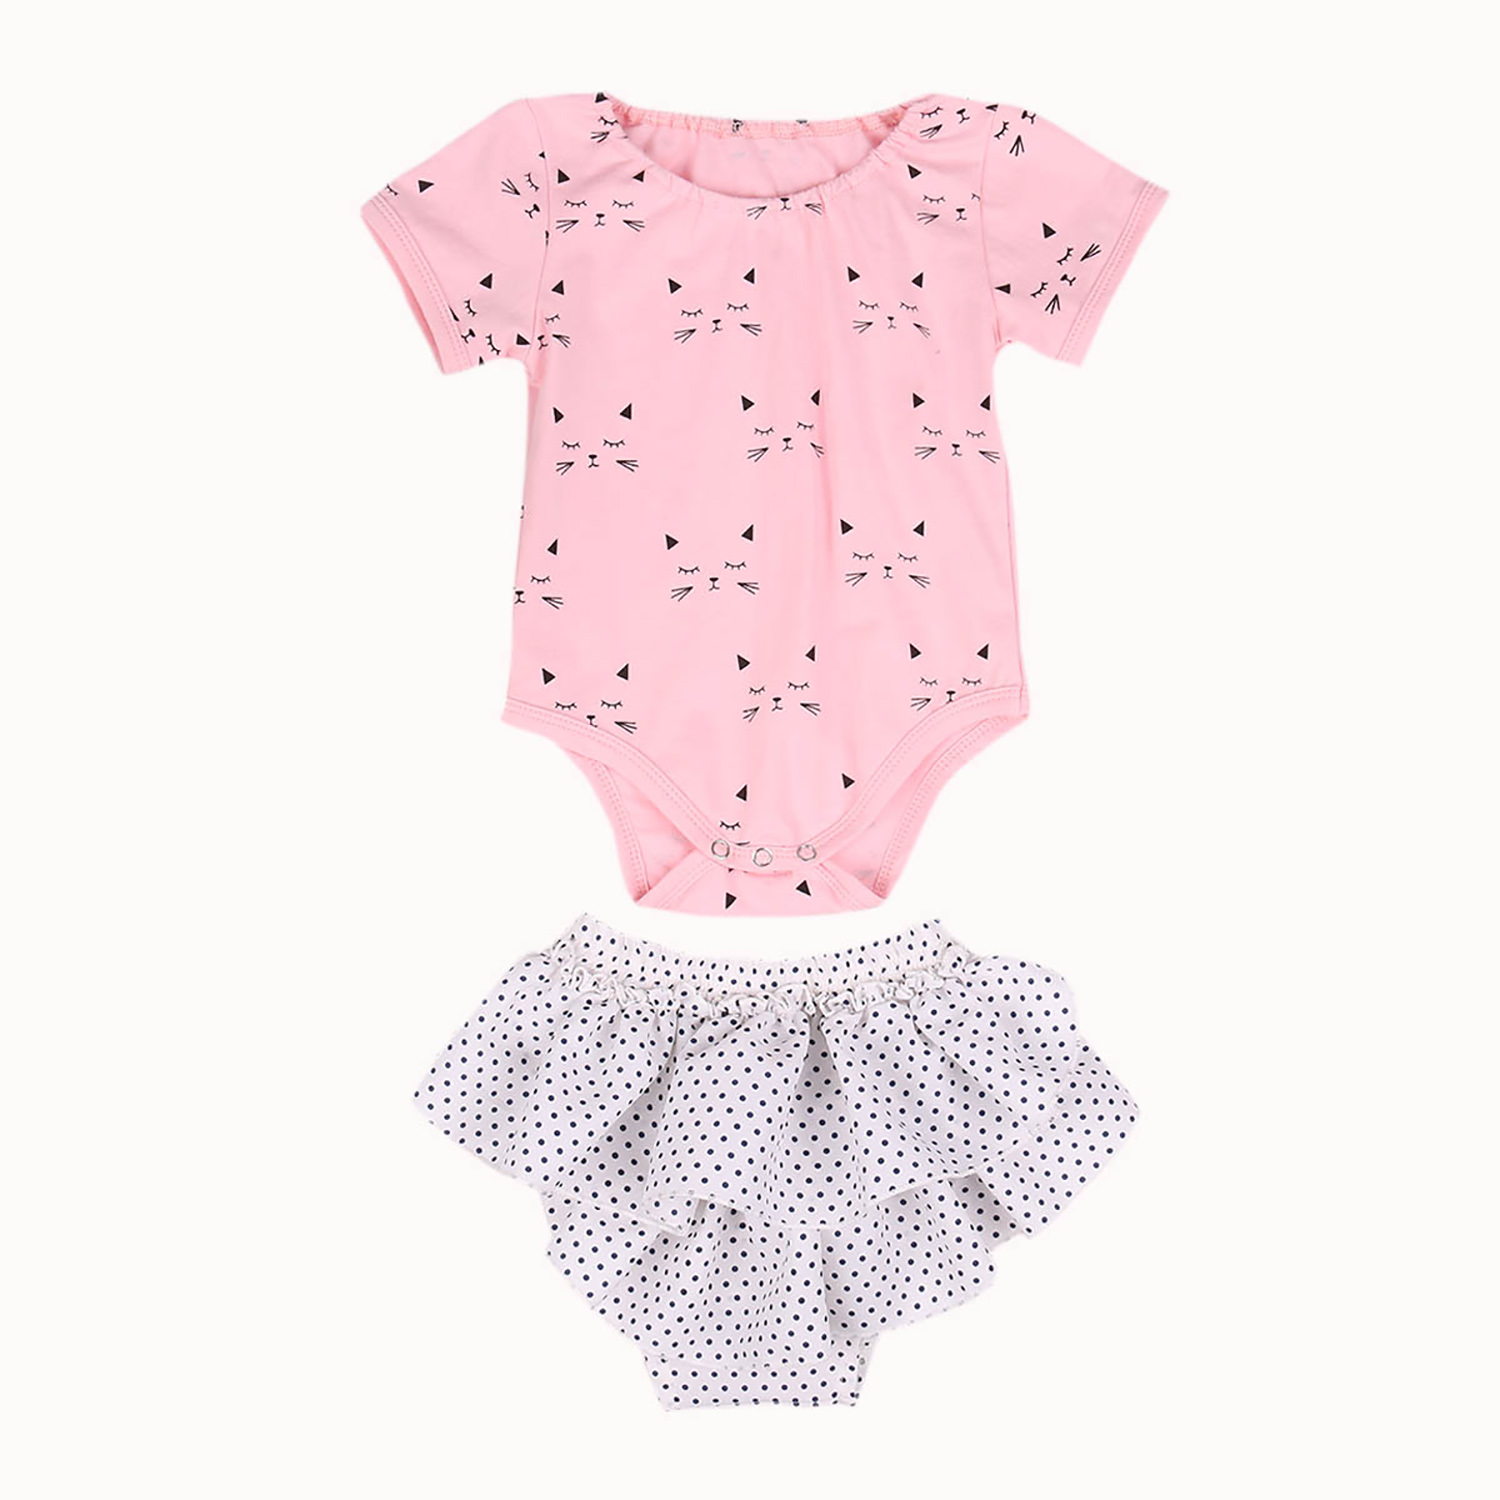 Cotton Infant Baby Girls Clothes Summer Short Sleeve Romper Jumpsuit + Shorts Pants 2pcs Outfits Baby Clothing Set